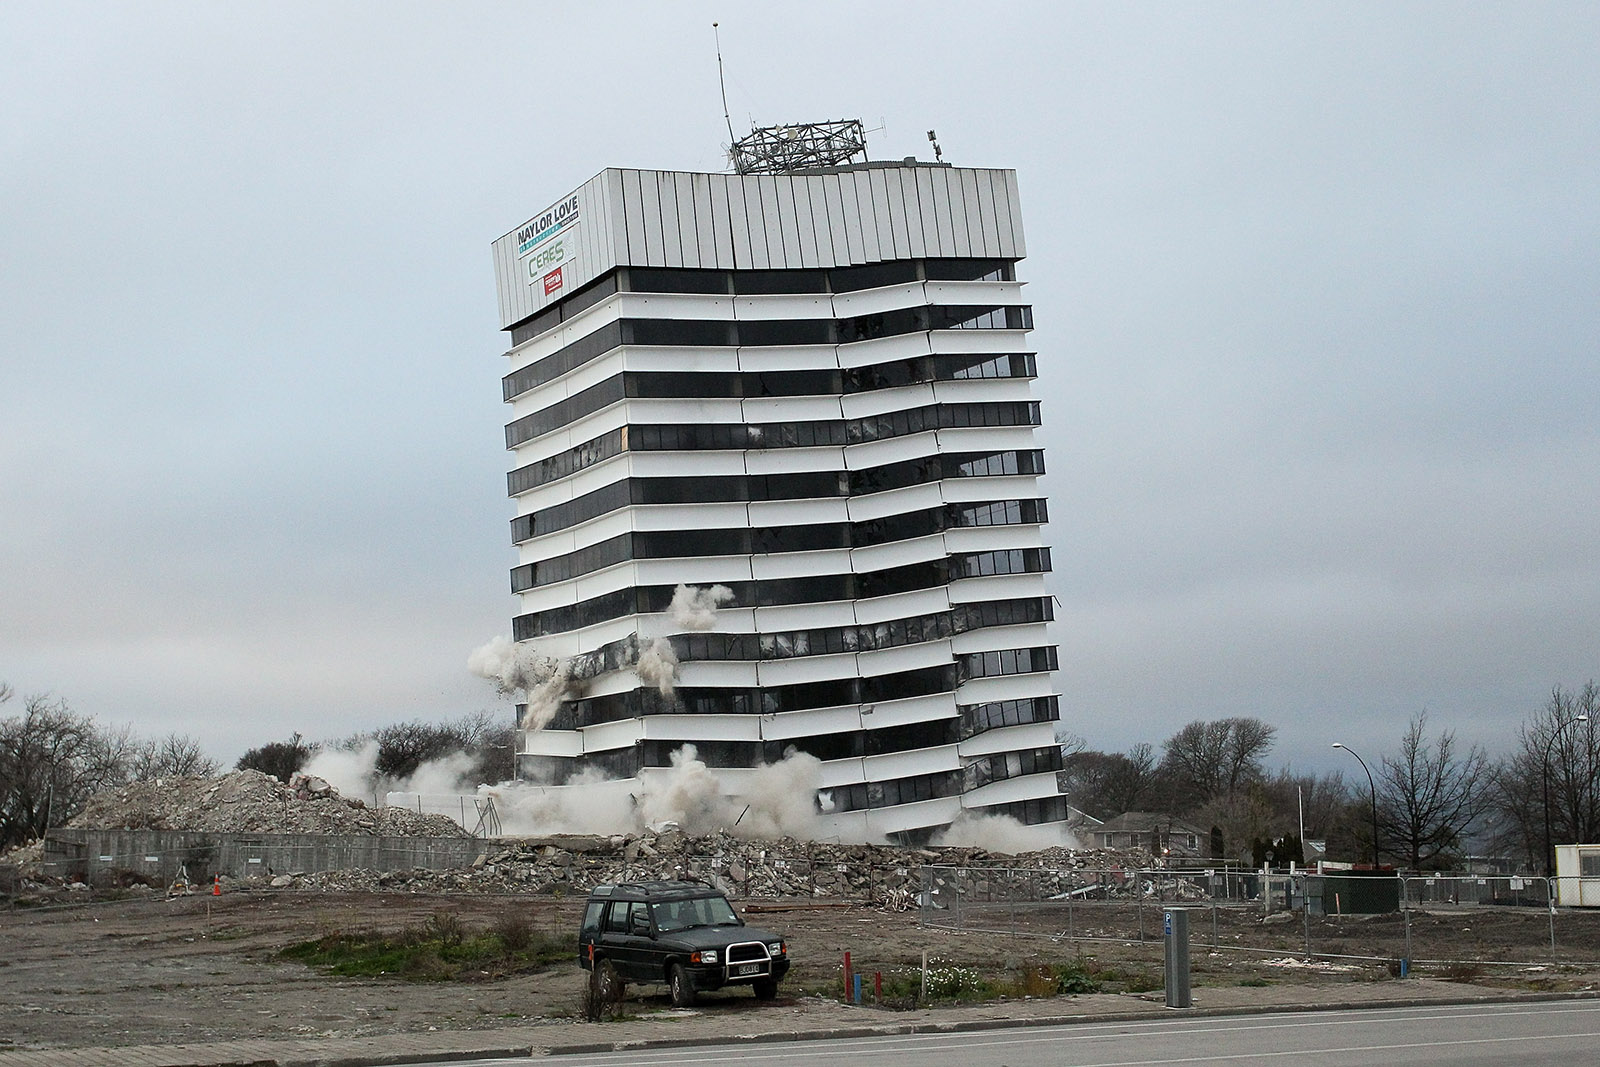 Collapsing building